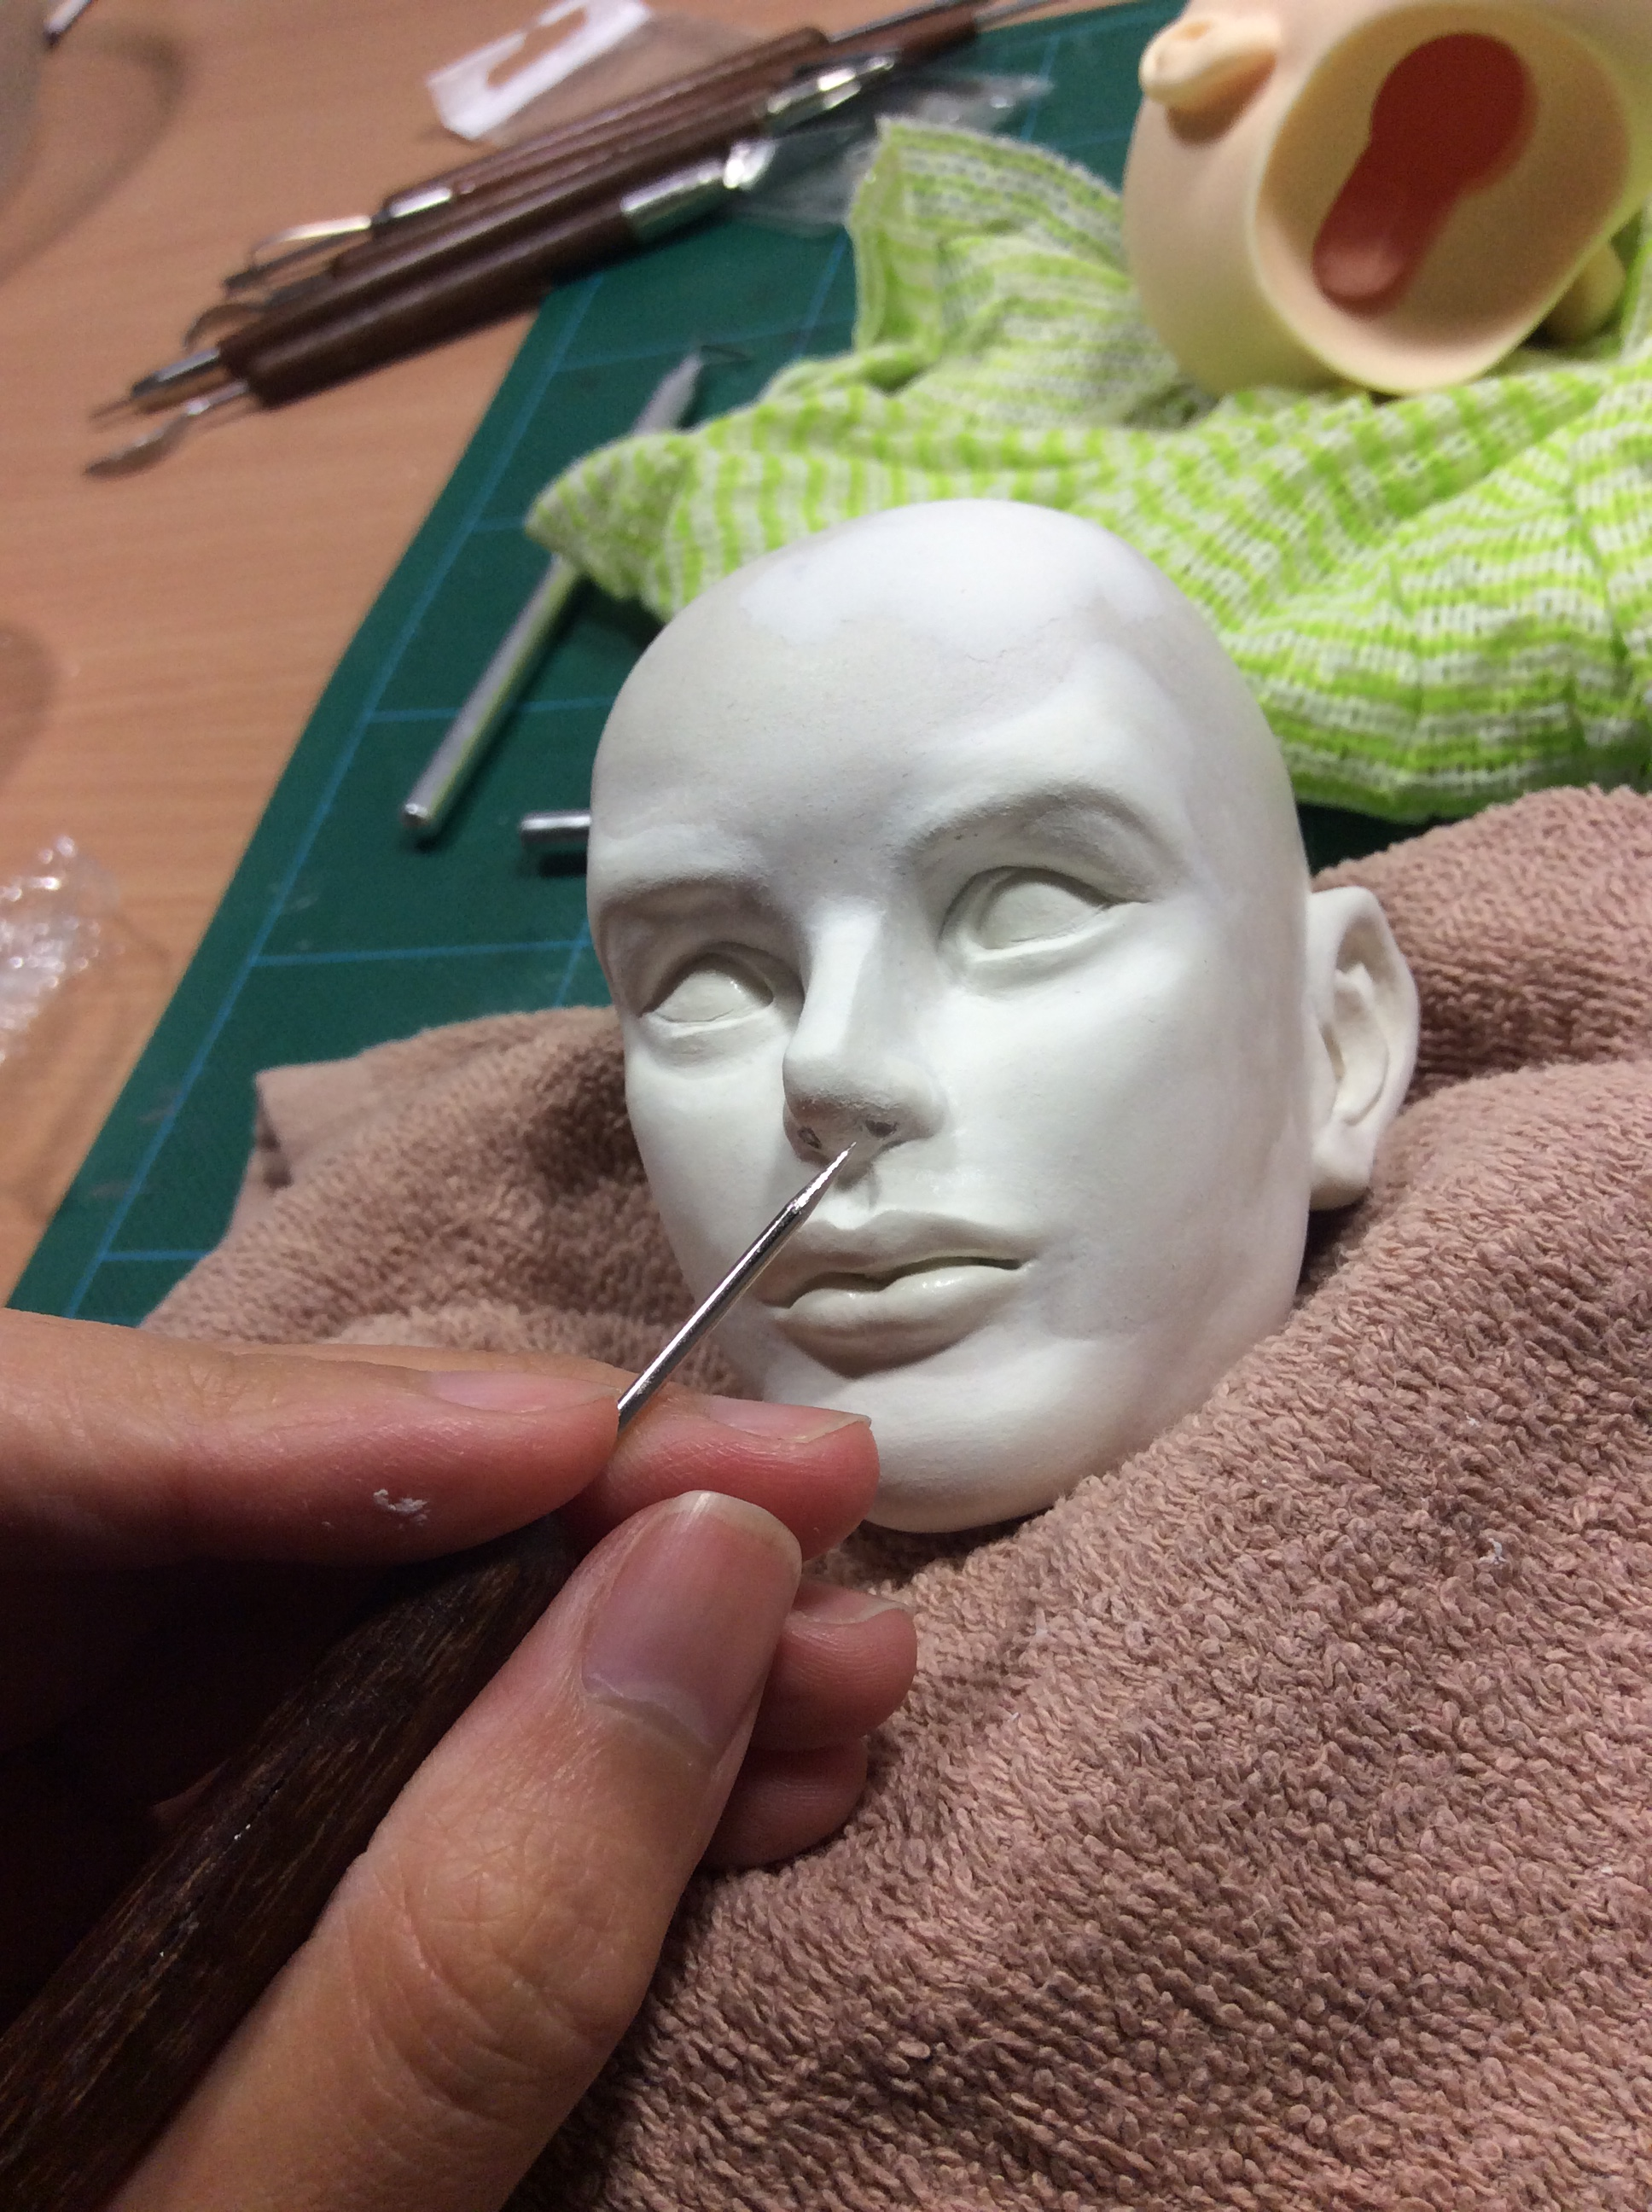 jemse---my-first-doll-head-making-progress-diary-part-4_32275433512_o